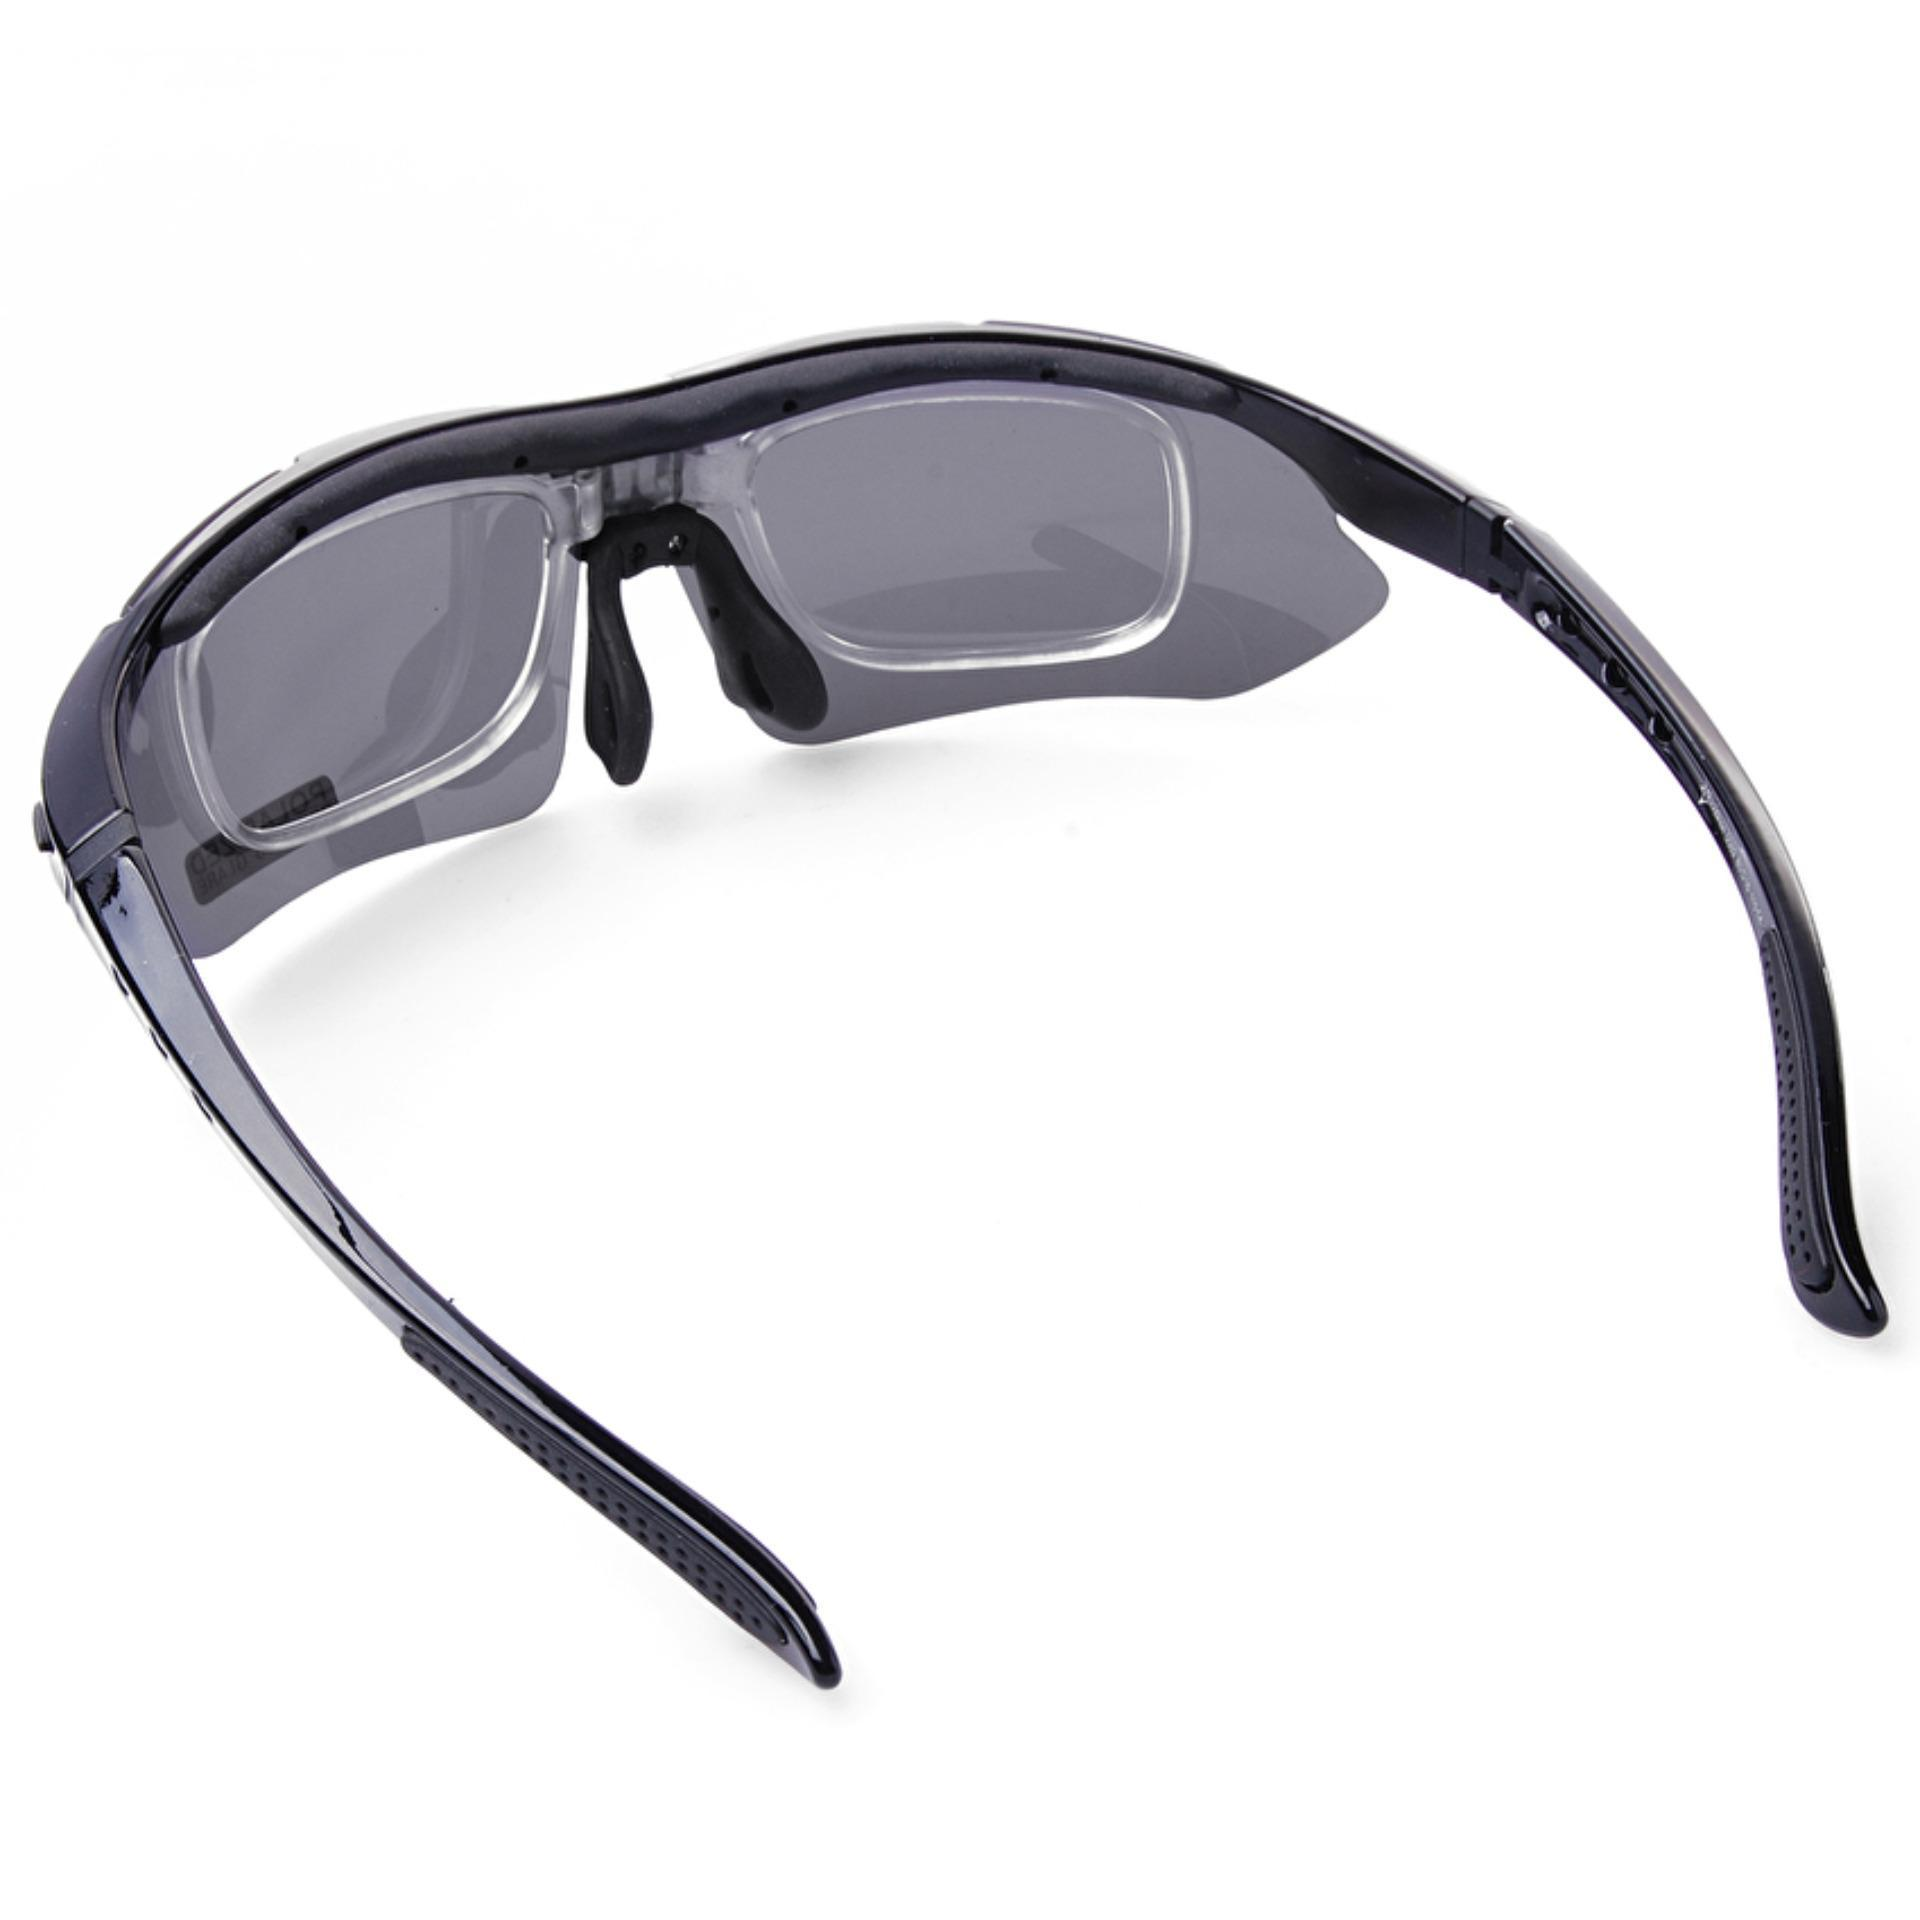 RockBros Polarized Cycling Sports Sunglasses with 5 Pairs of Lenses(Black) - intl ...